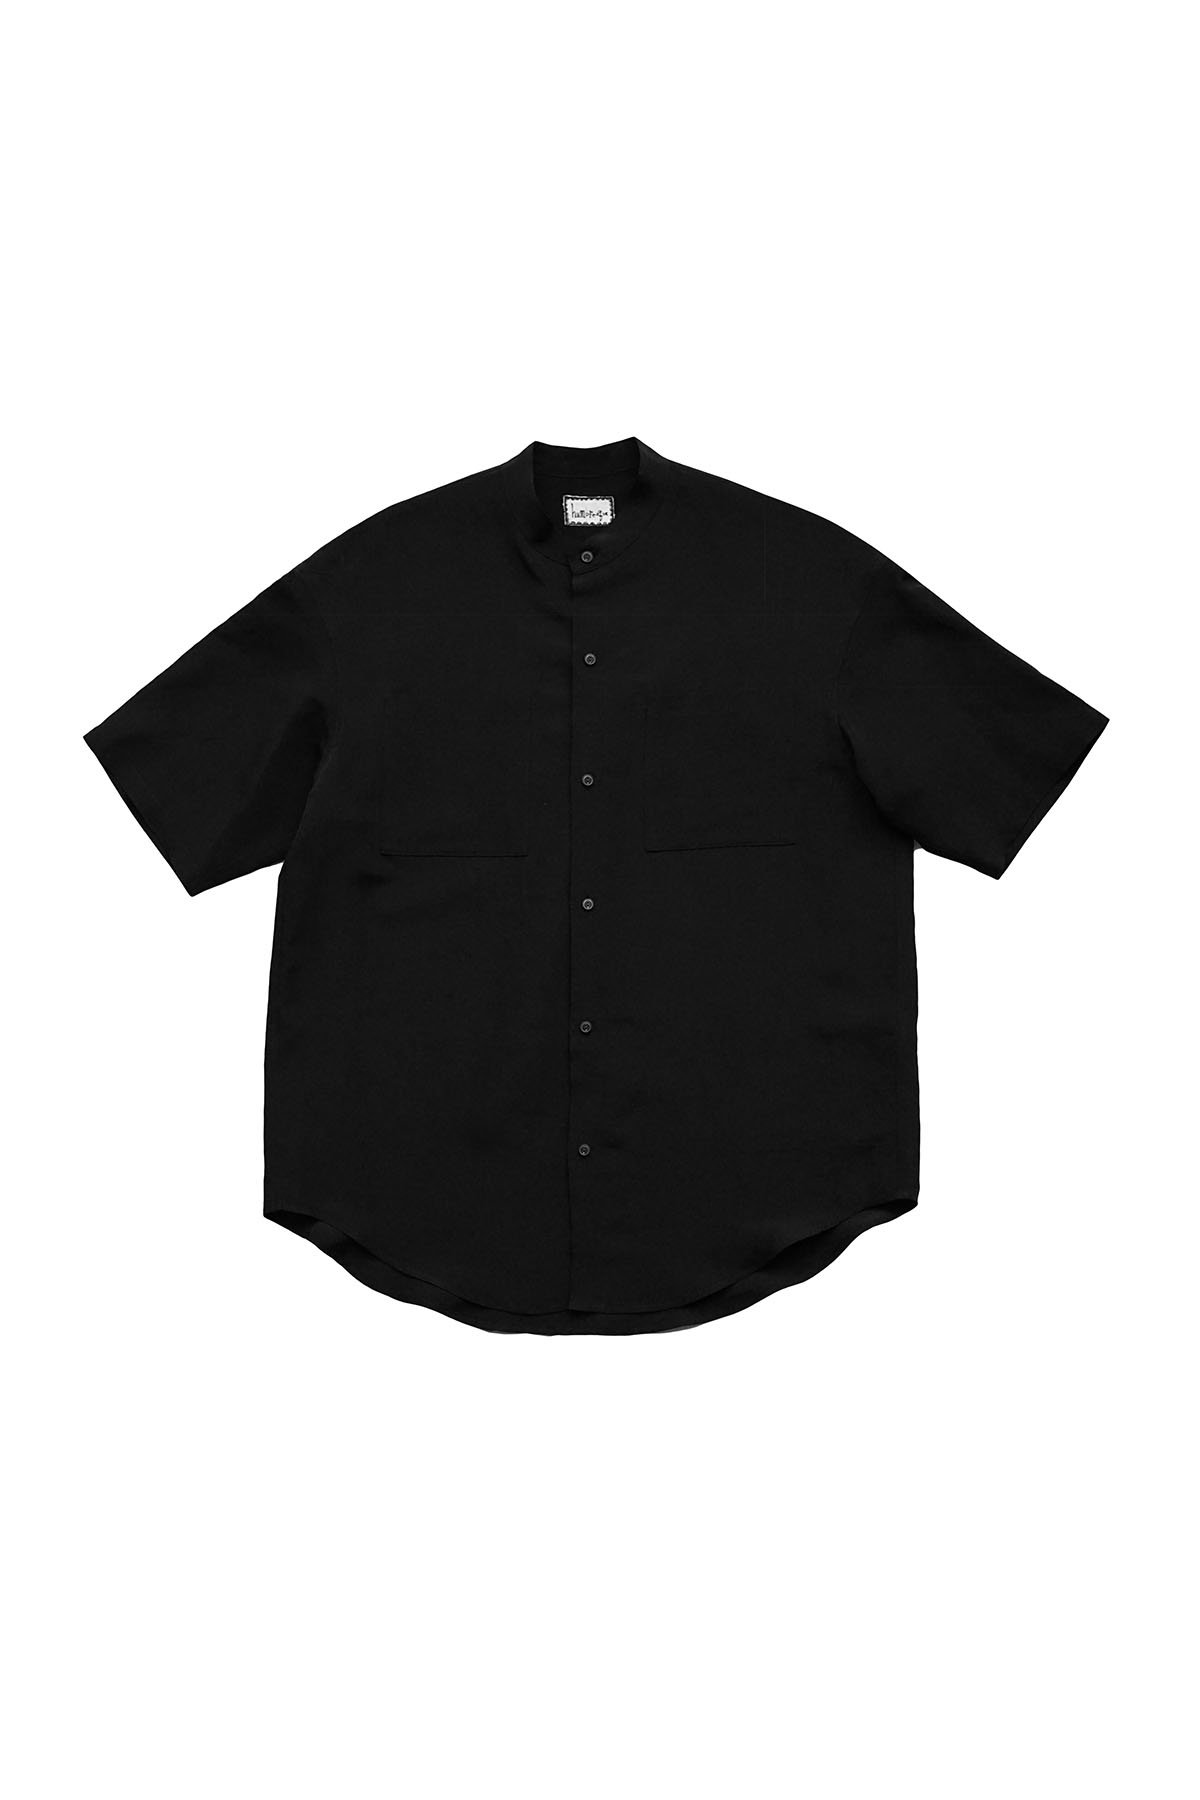 humoresque ★★★ - Exclusive MEN'S STAND COLLAR SHIRT - BLACK  PRICE 49,500 tax-in